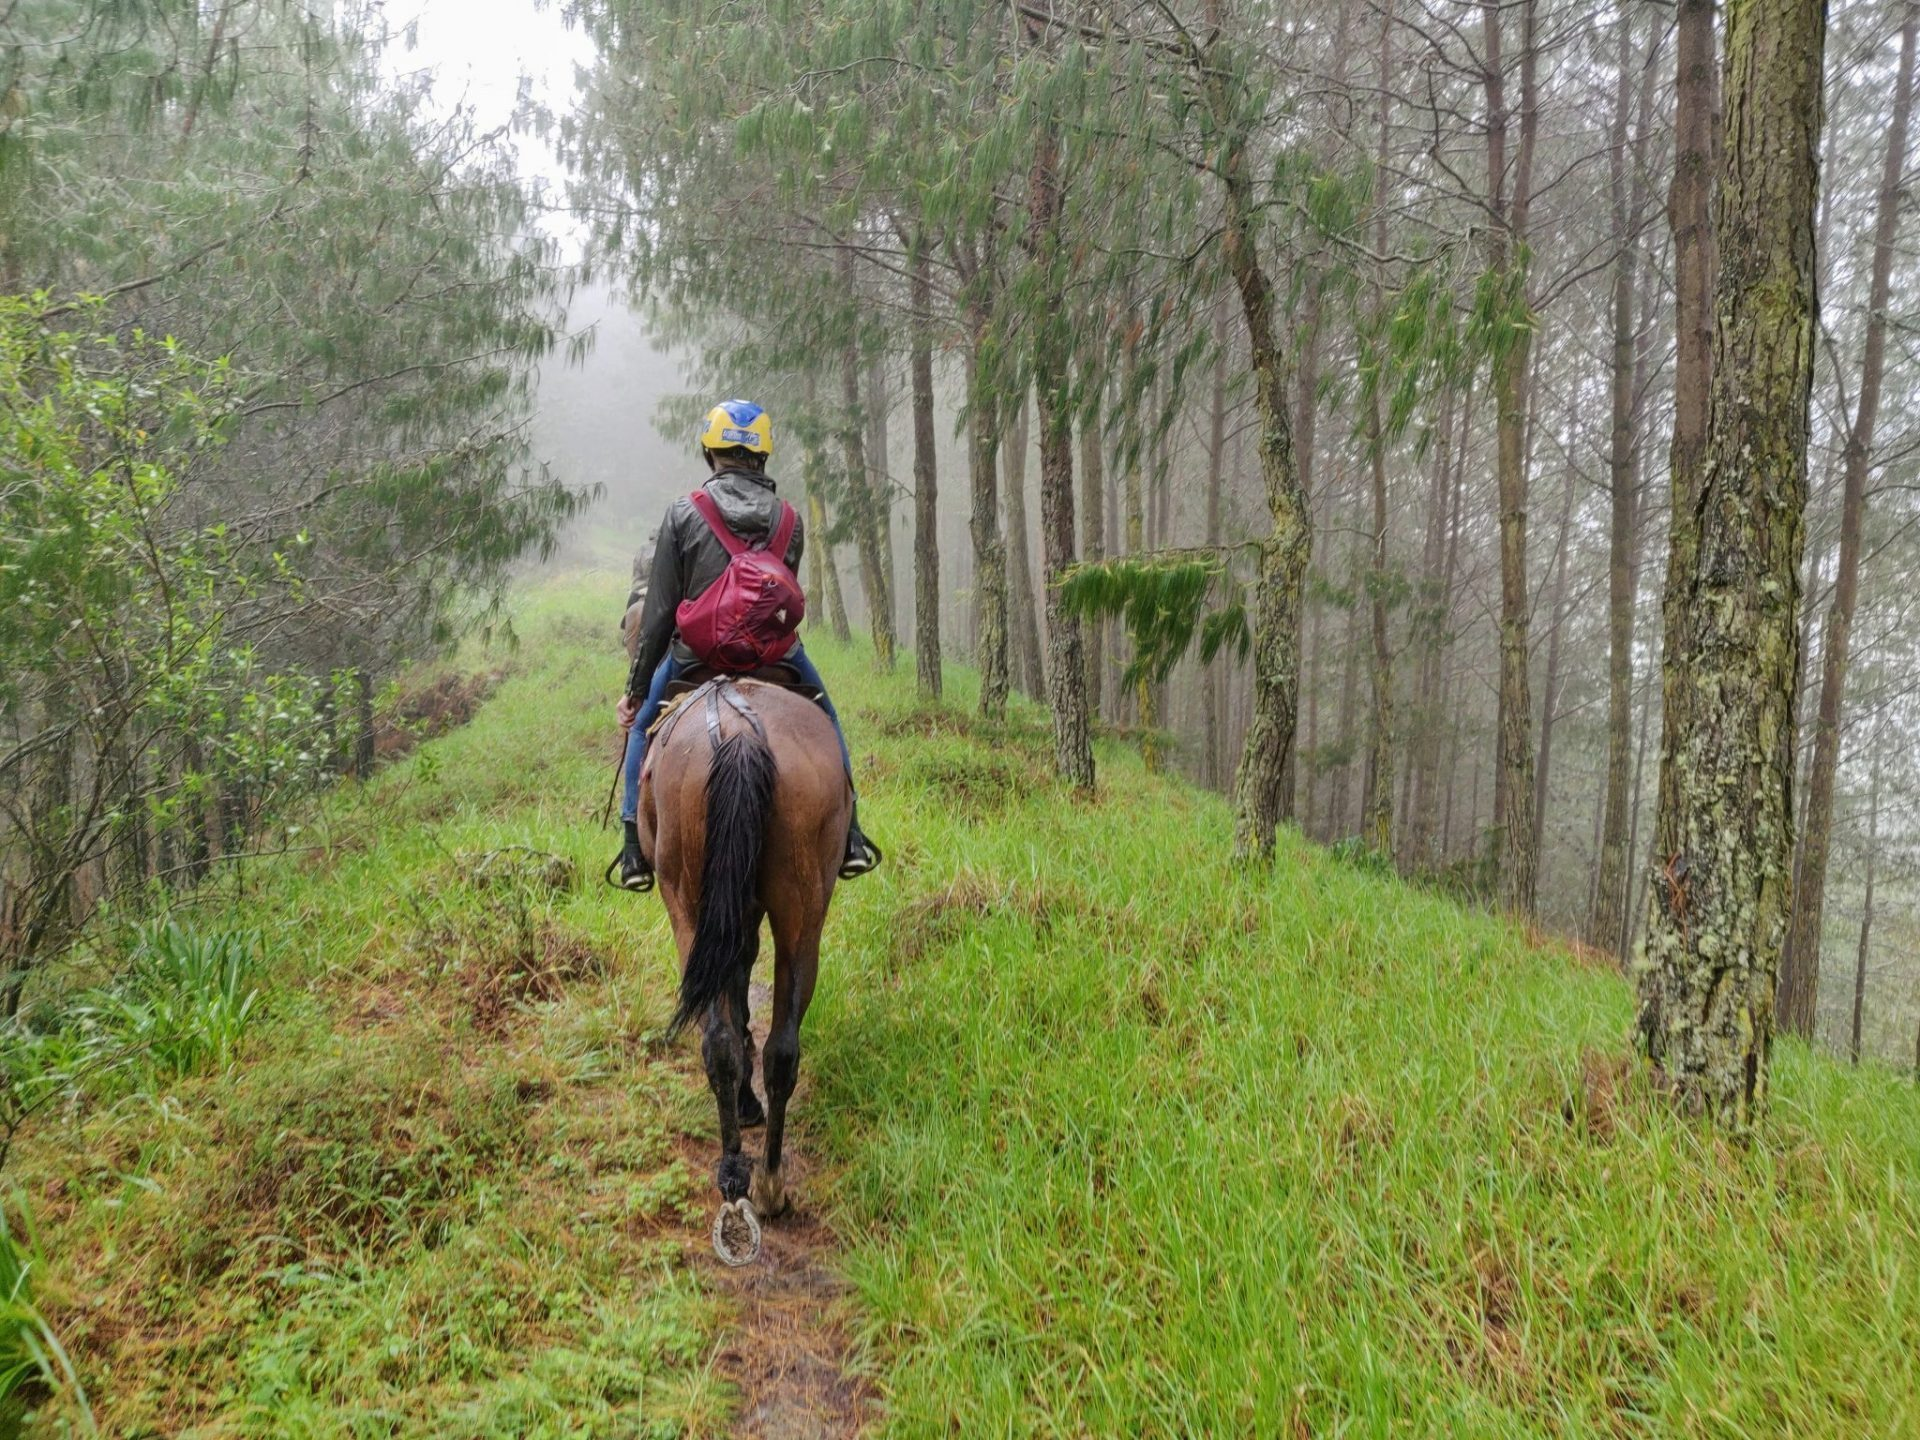 horseback riding through trees in the mountains near Cuenca